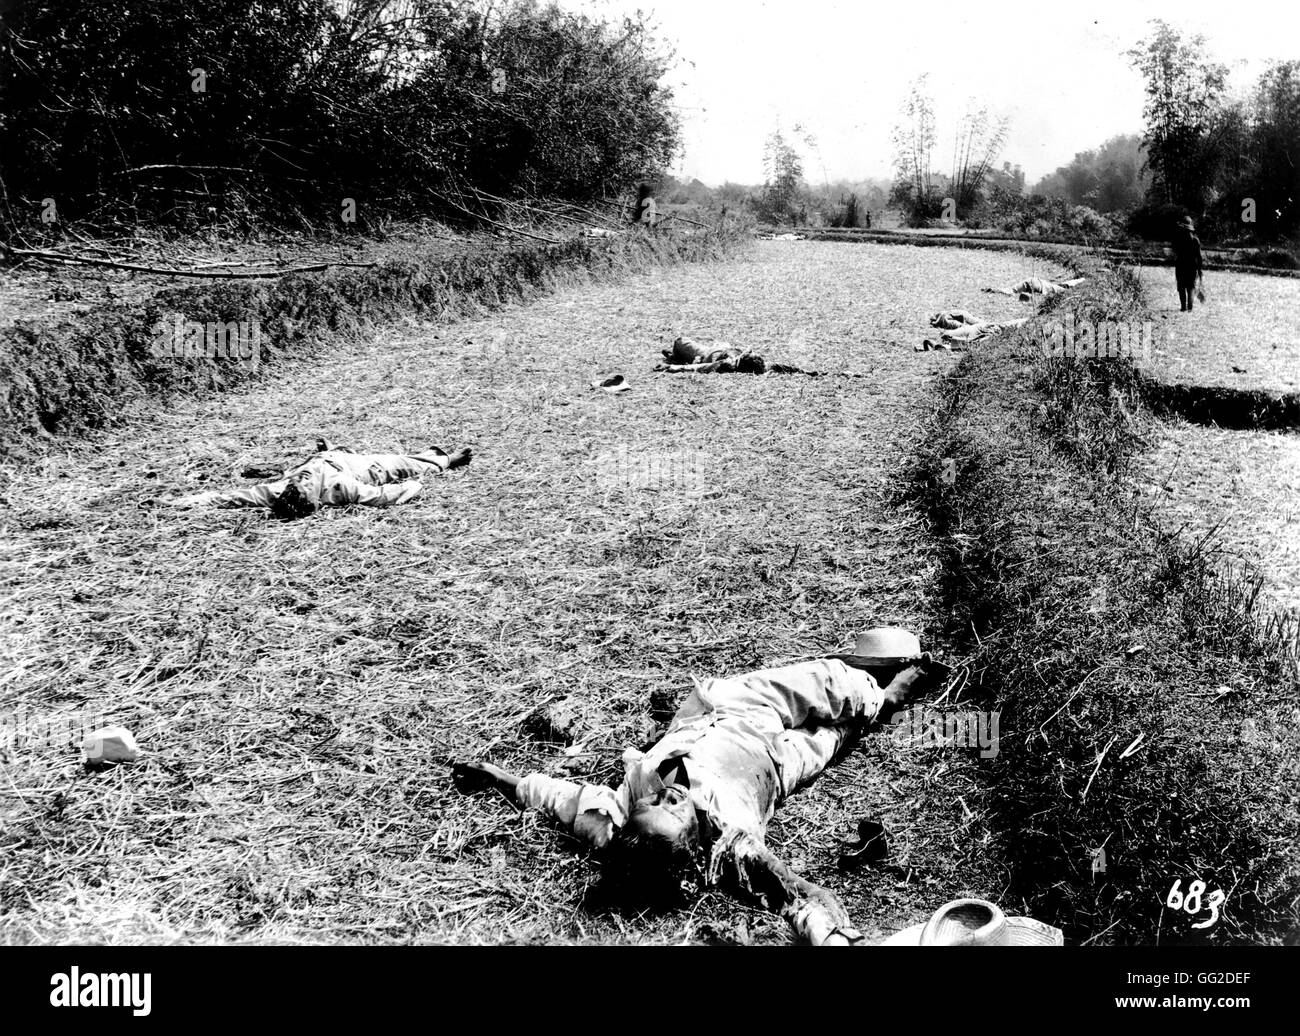 The Philippines War: corpses of insurgents Photo Perley Frémont Rockett 1899 Hispano-American war Washington. Library Stock Photo